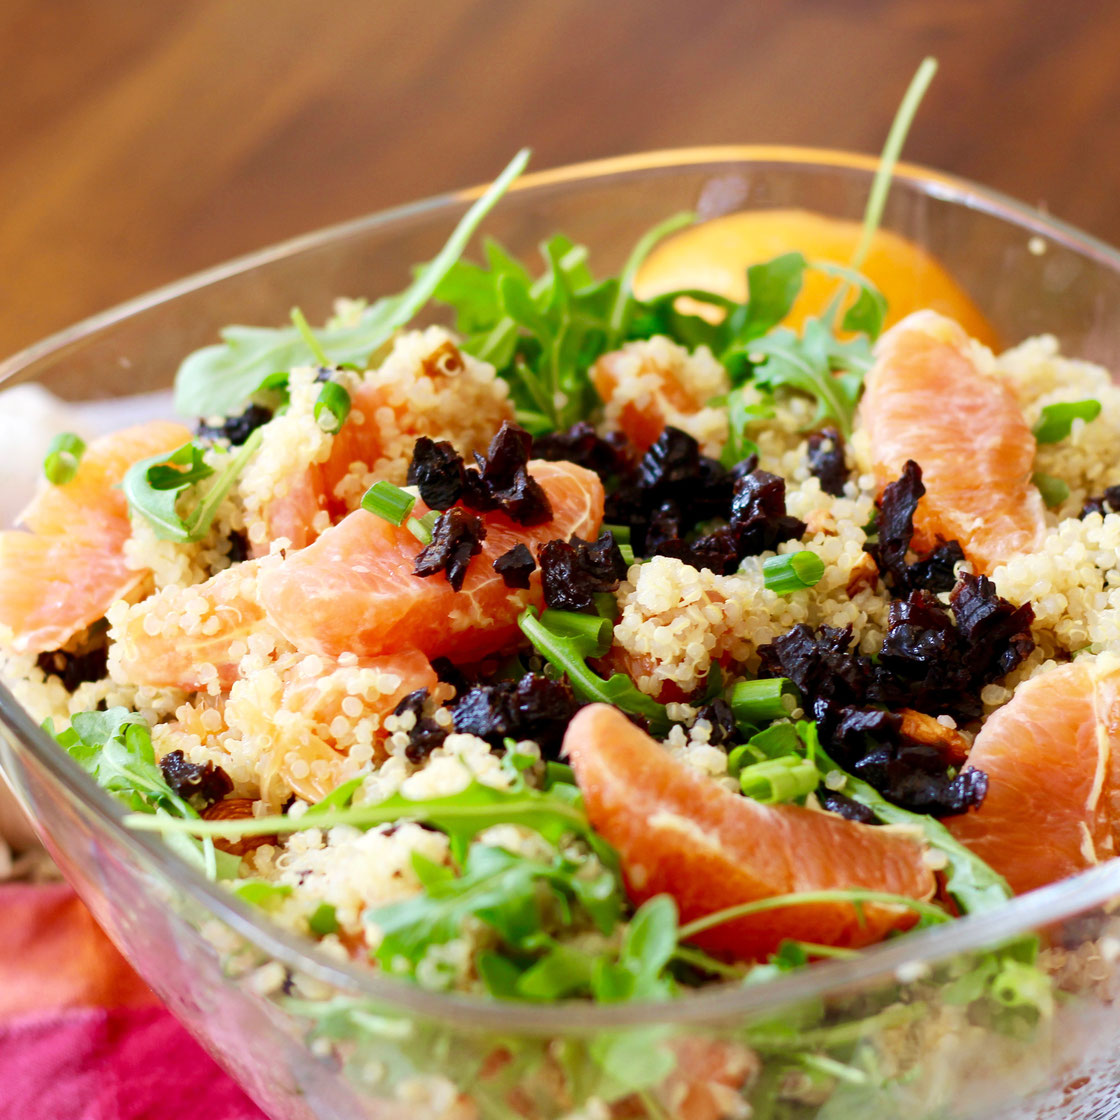 looking-for-healthy-salad-recipes-this-citrus-quinoa-salad-with-prunes-is-perfect-for-summer-and-is-loaded-with-arugula-and-fruit.jpg